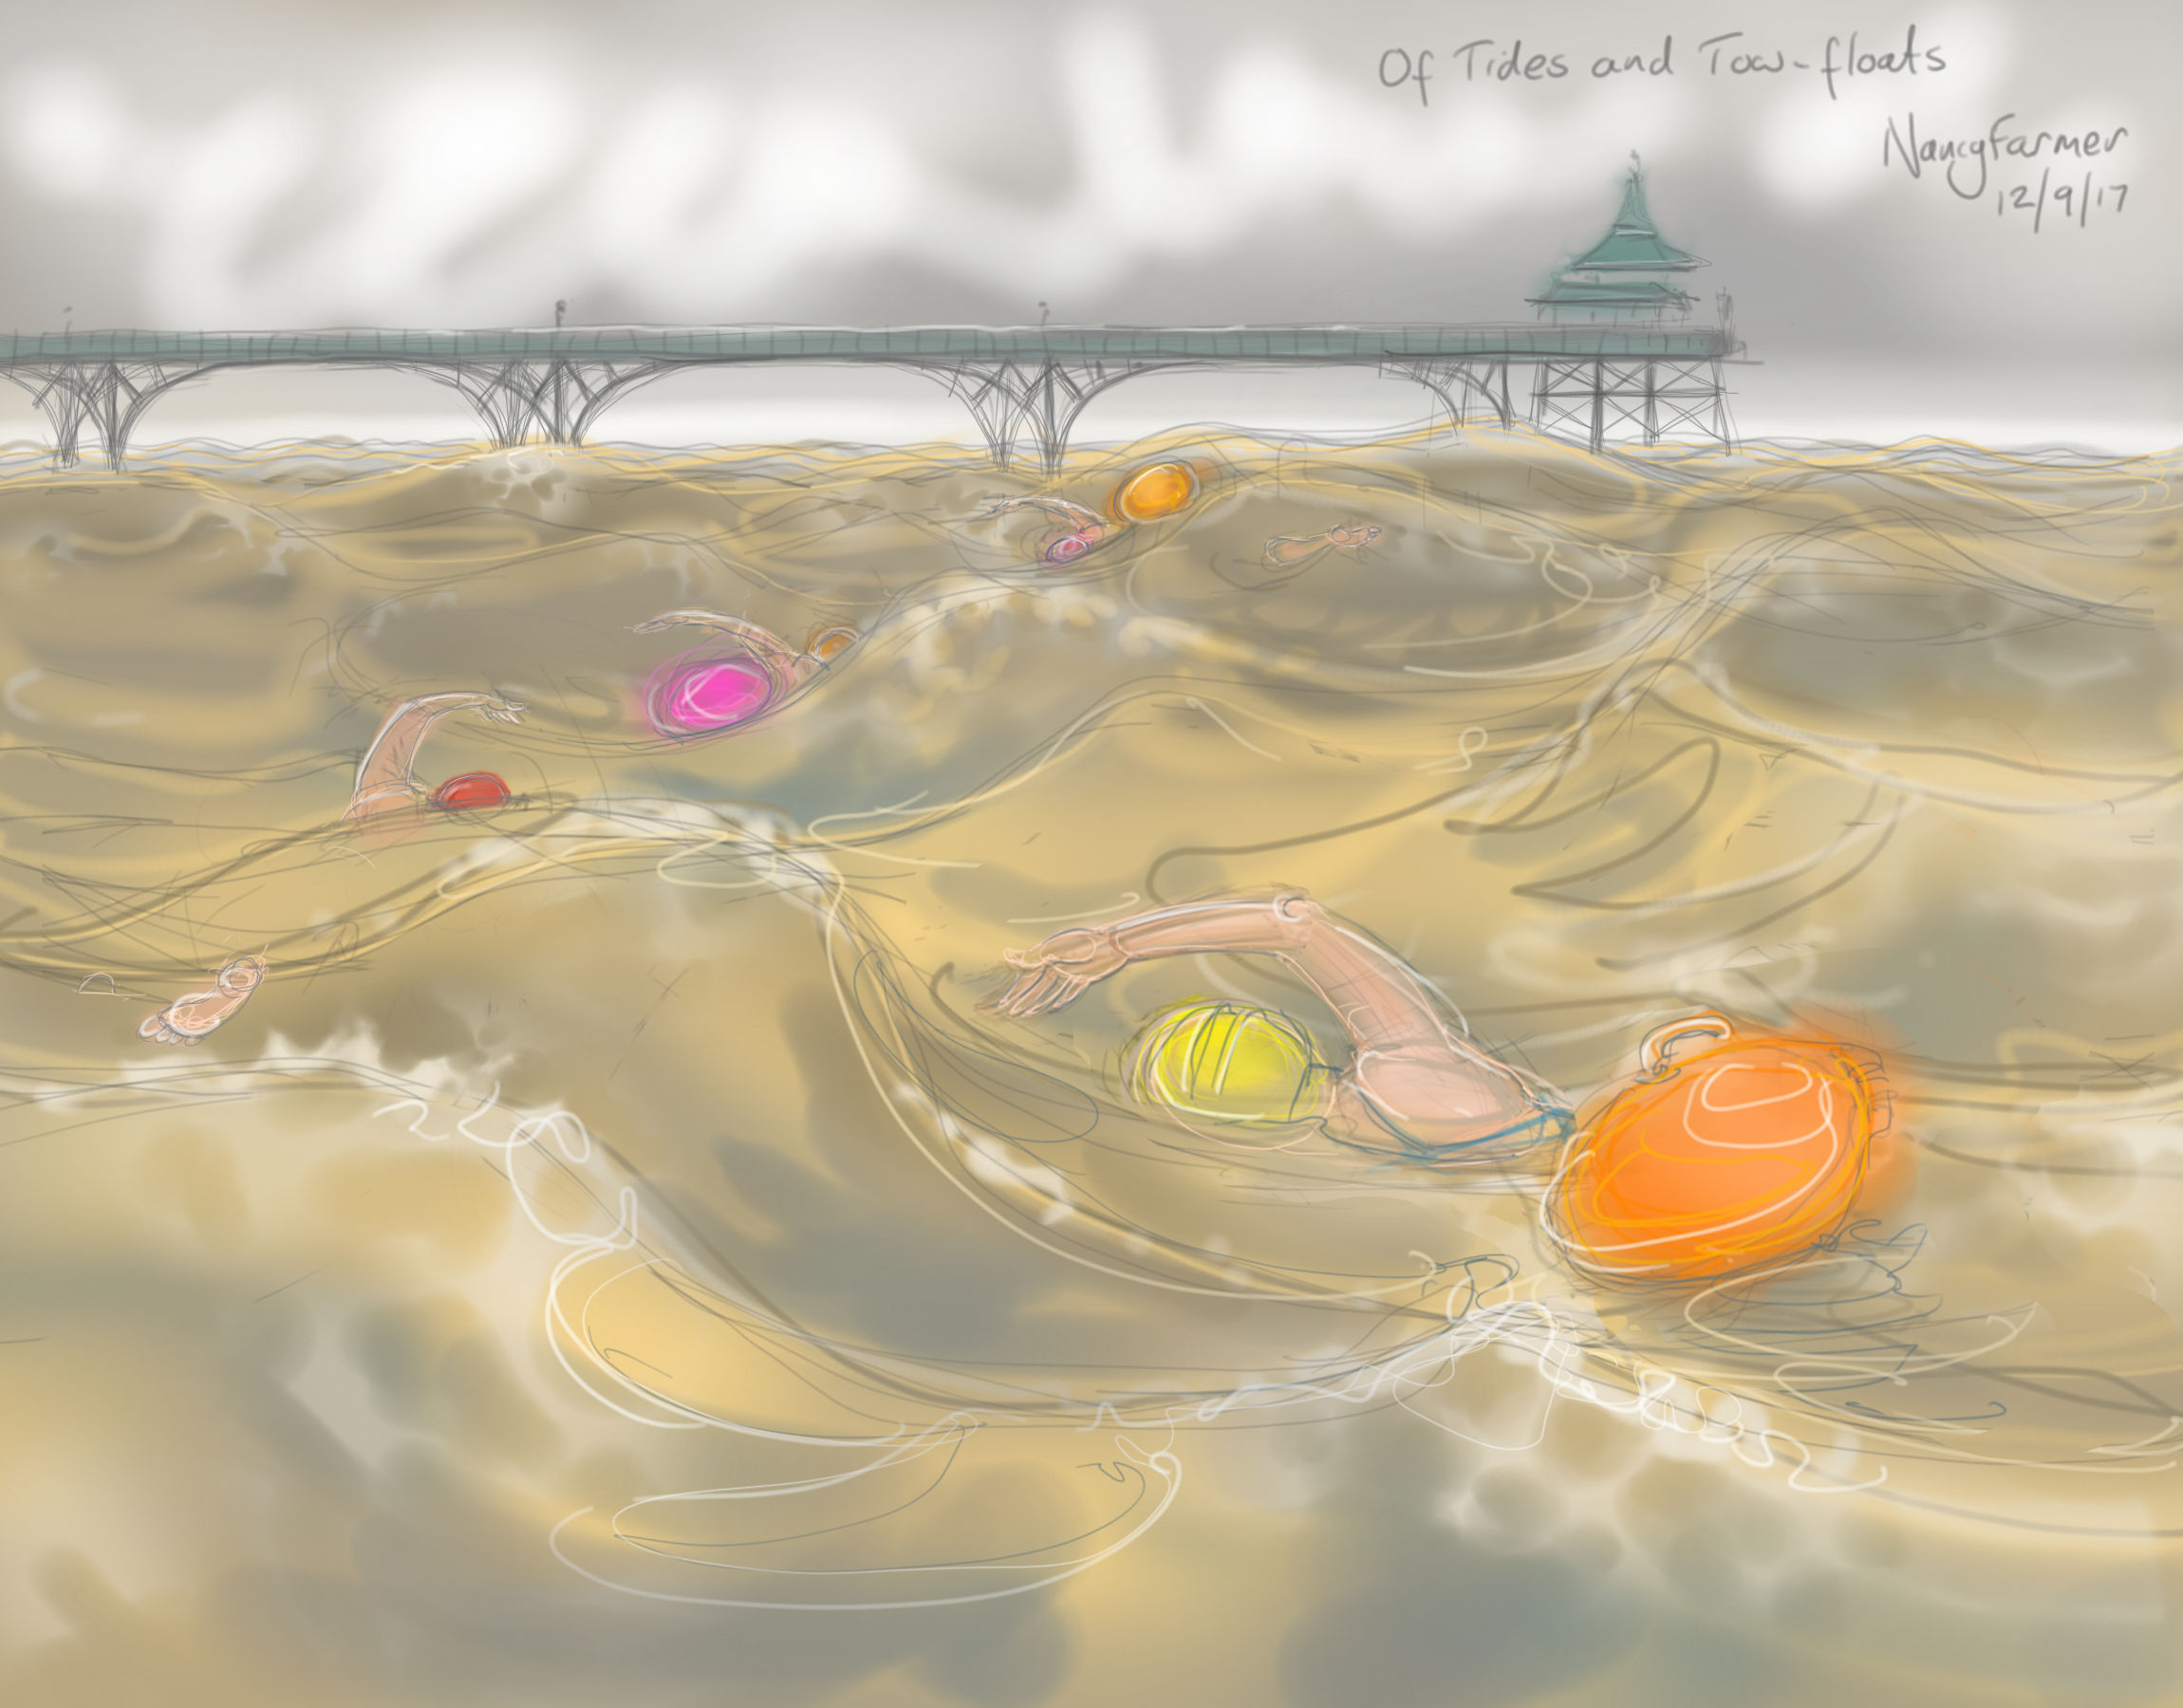 Of Tides & Tow-Floats